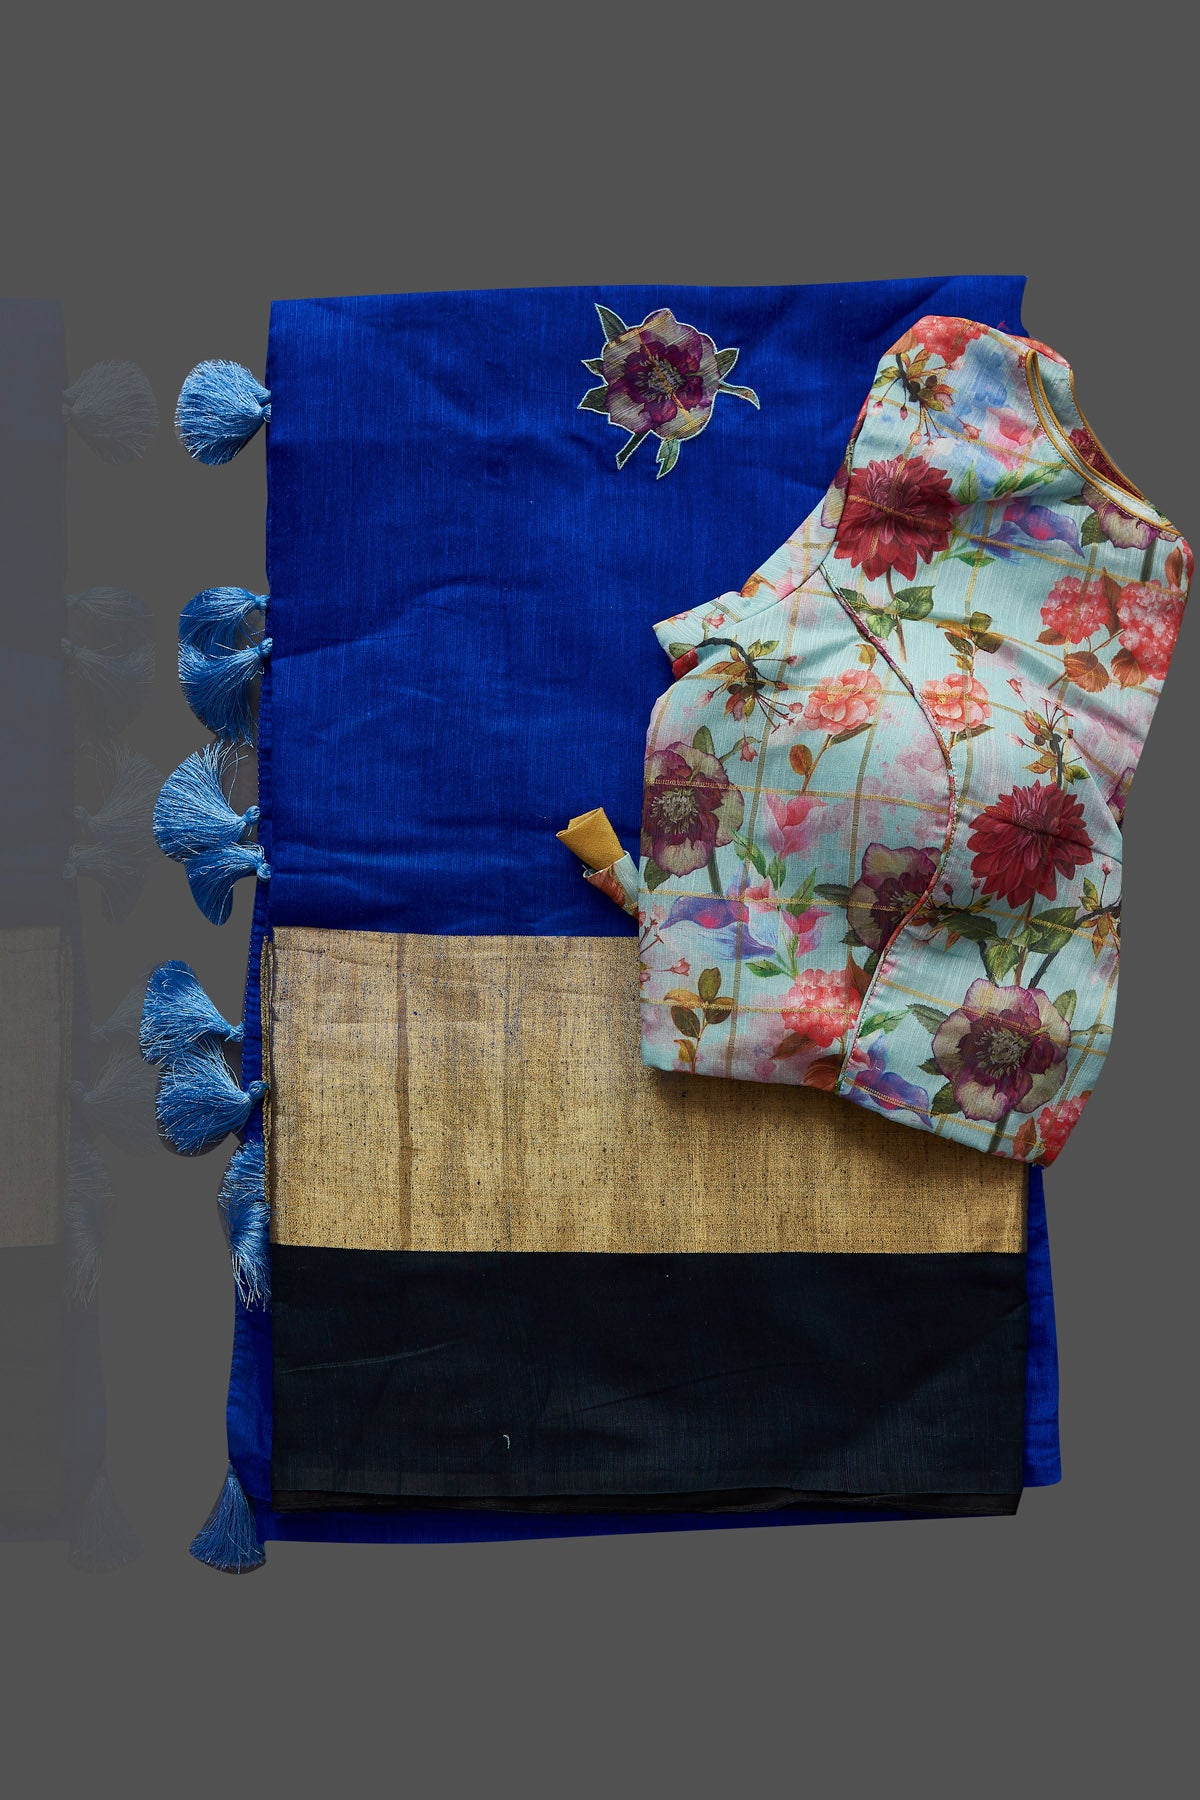 Buy beautiful indigo blue floral applique linen saree online in USA with floral saree blouse. Radiate elegance with designer sarees with blouse, linen sarees from Pure Elegance Indian fashion boutique in USA. We bring a especially curated collection of ethnic saris for Indian women in USA under one roof!-blouse